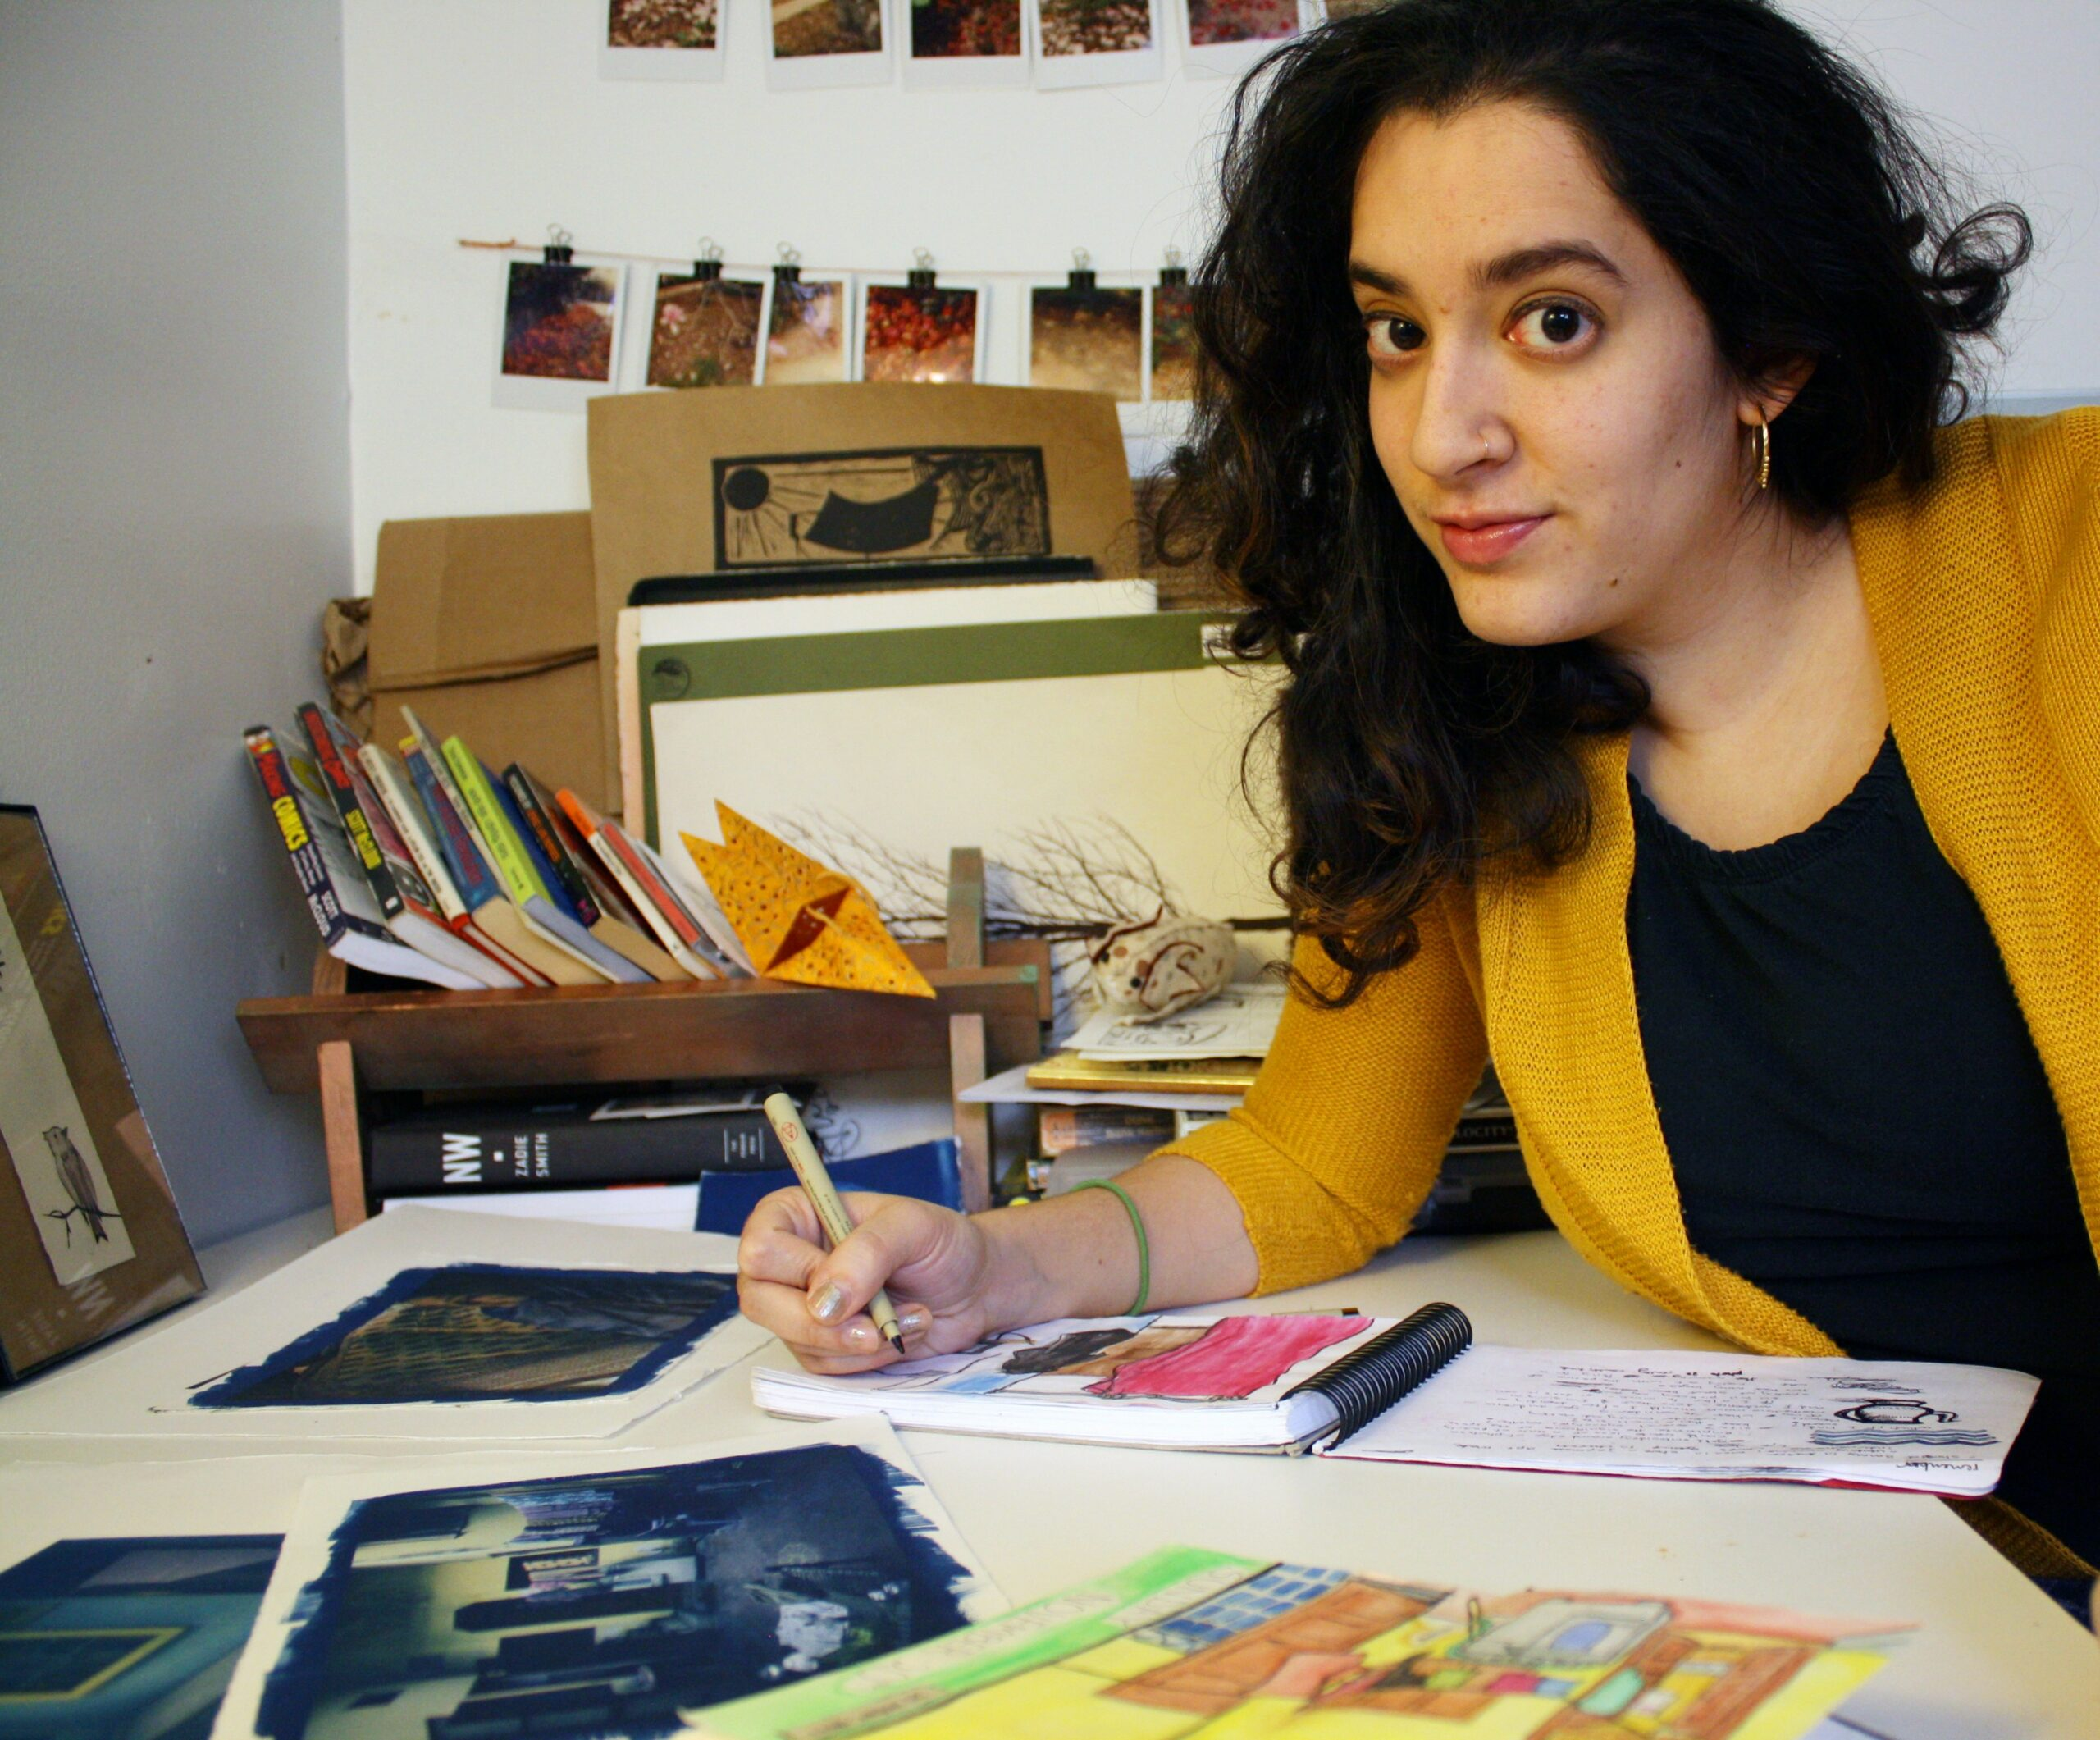 An artist draws with a pen on an open page in her sketchbook. There are books, sketches and polaroid pictures around her